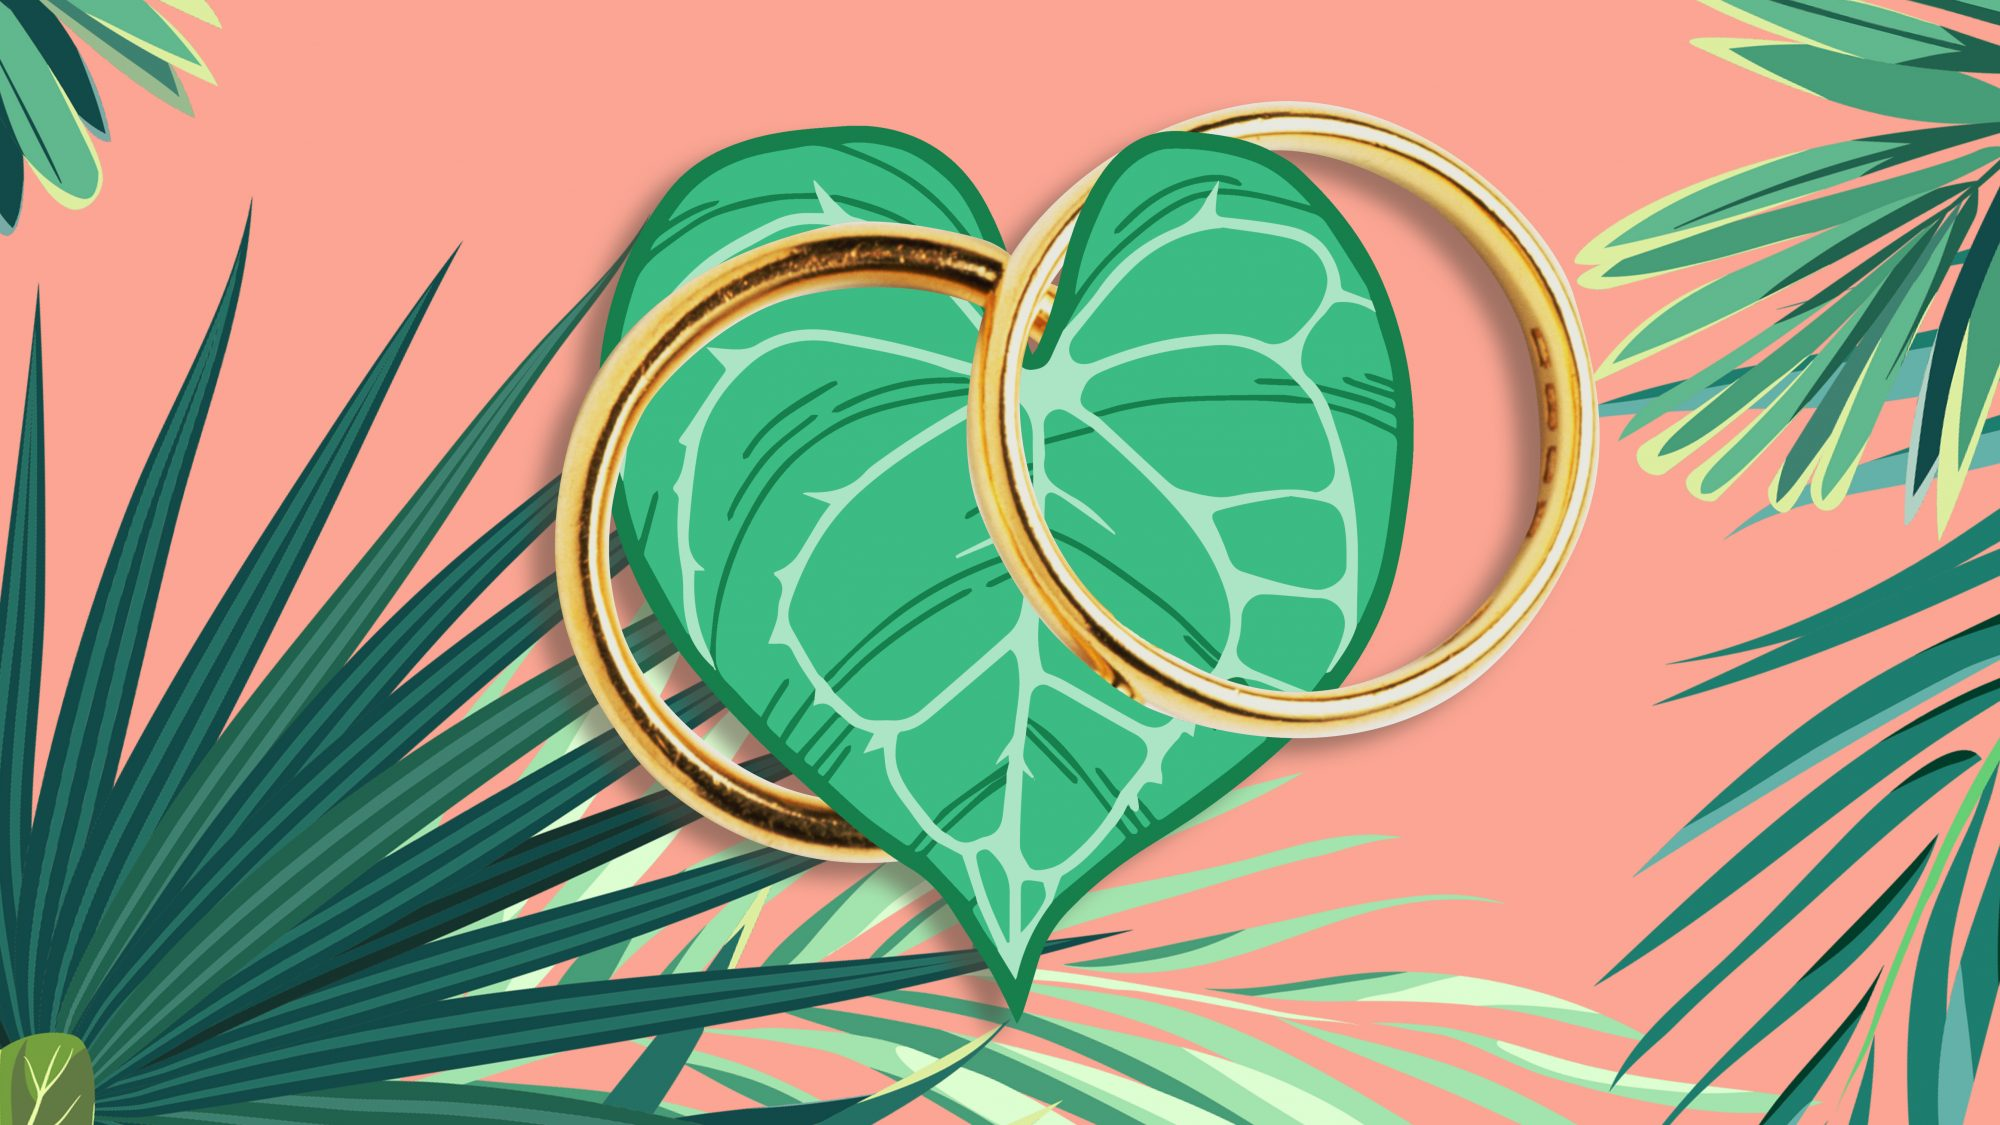 green wedding hacks products tricks zero-waste-wedding rings bands